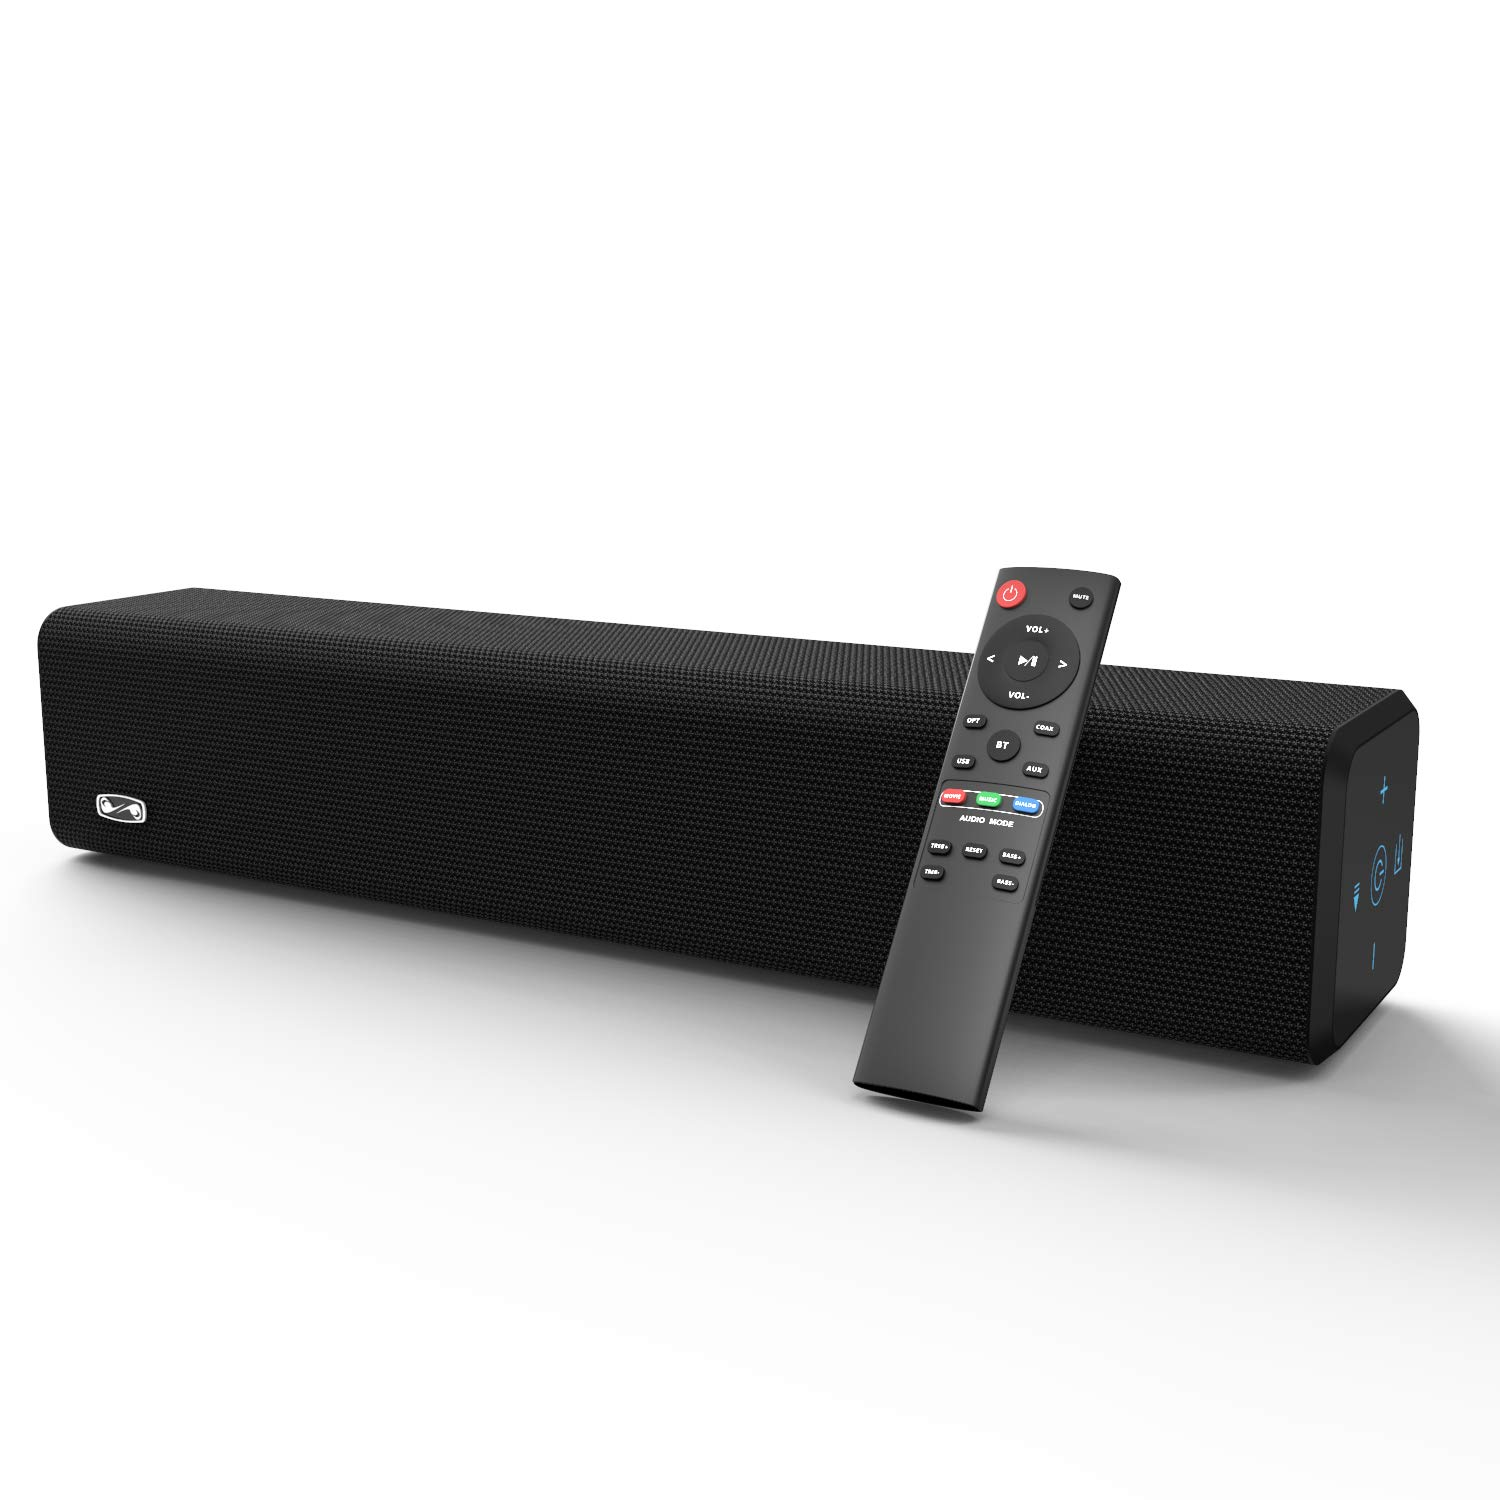 Soundbar, BESTISAN Sound Bar with Bluetooth 5.0 and Wired Connections, Home Theater Audio Sound Bars for TV (20 Inch, 50 Watt, 3 Inch Drivers, Bass Adjustable, Wall Mountable, Deep Bass, AUX-Out Port)